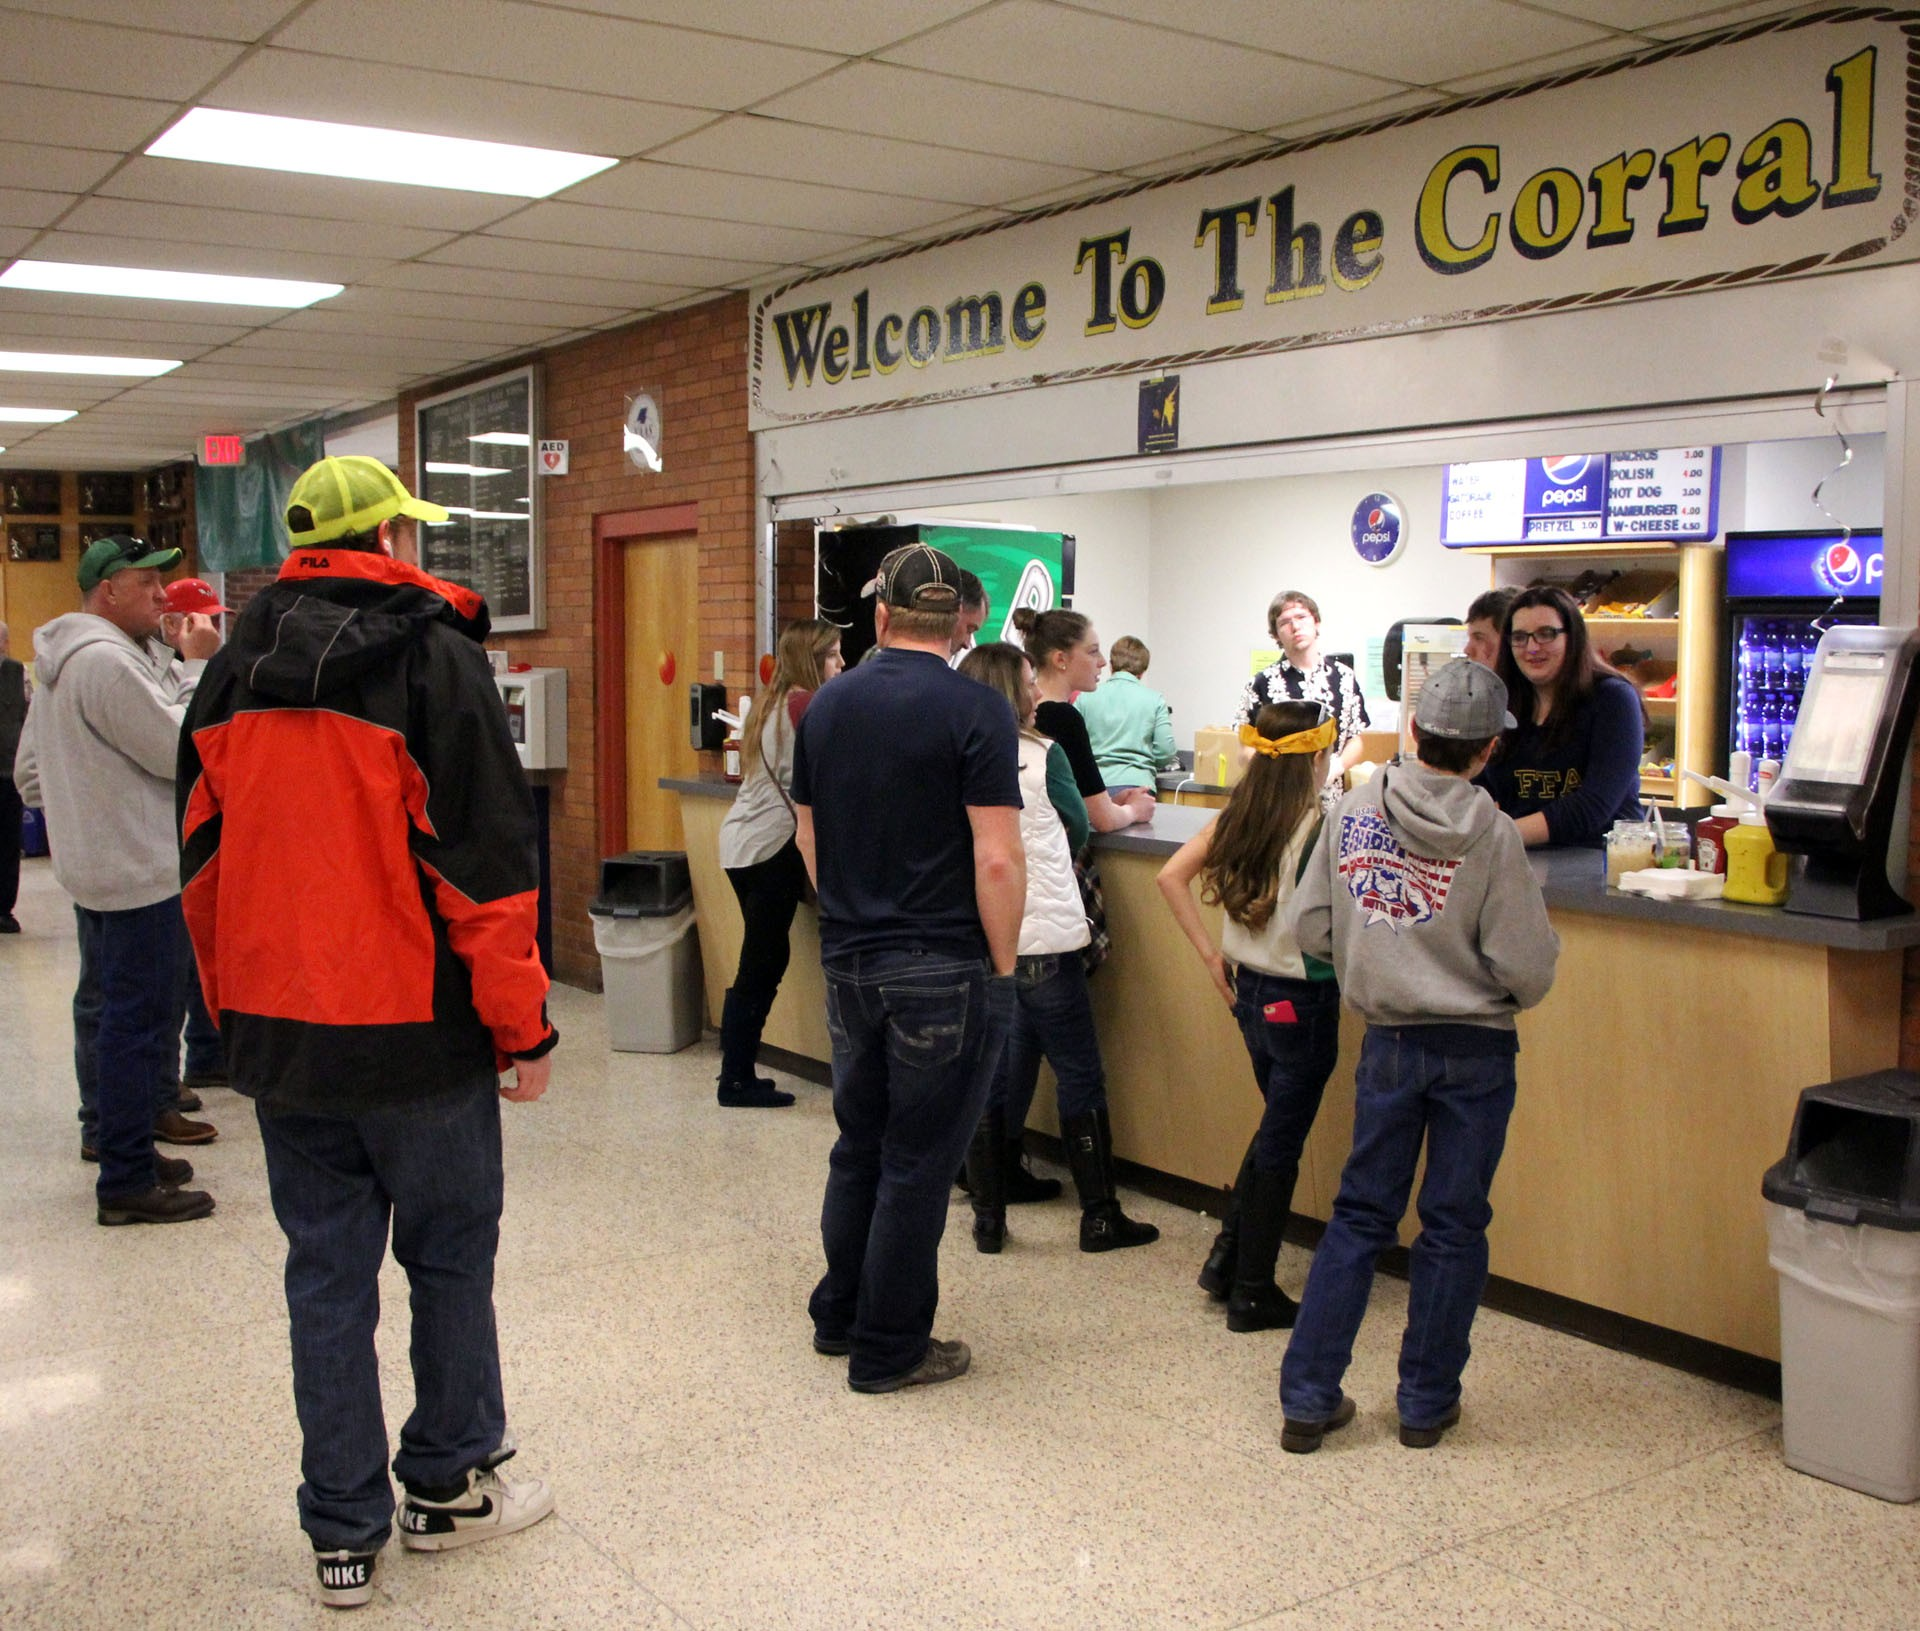 The Welcome to the Corral concession stand is being run by FFA students, who are earning funds for their organization.STAR PHOTO/Sharon Moore